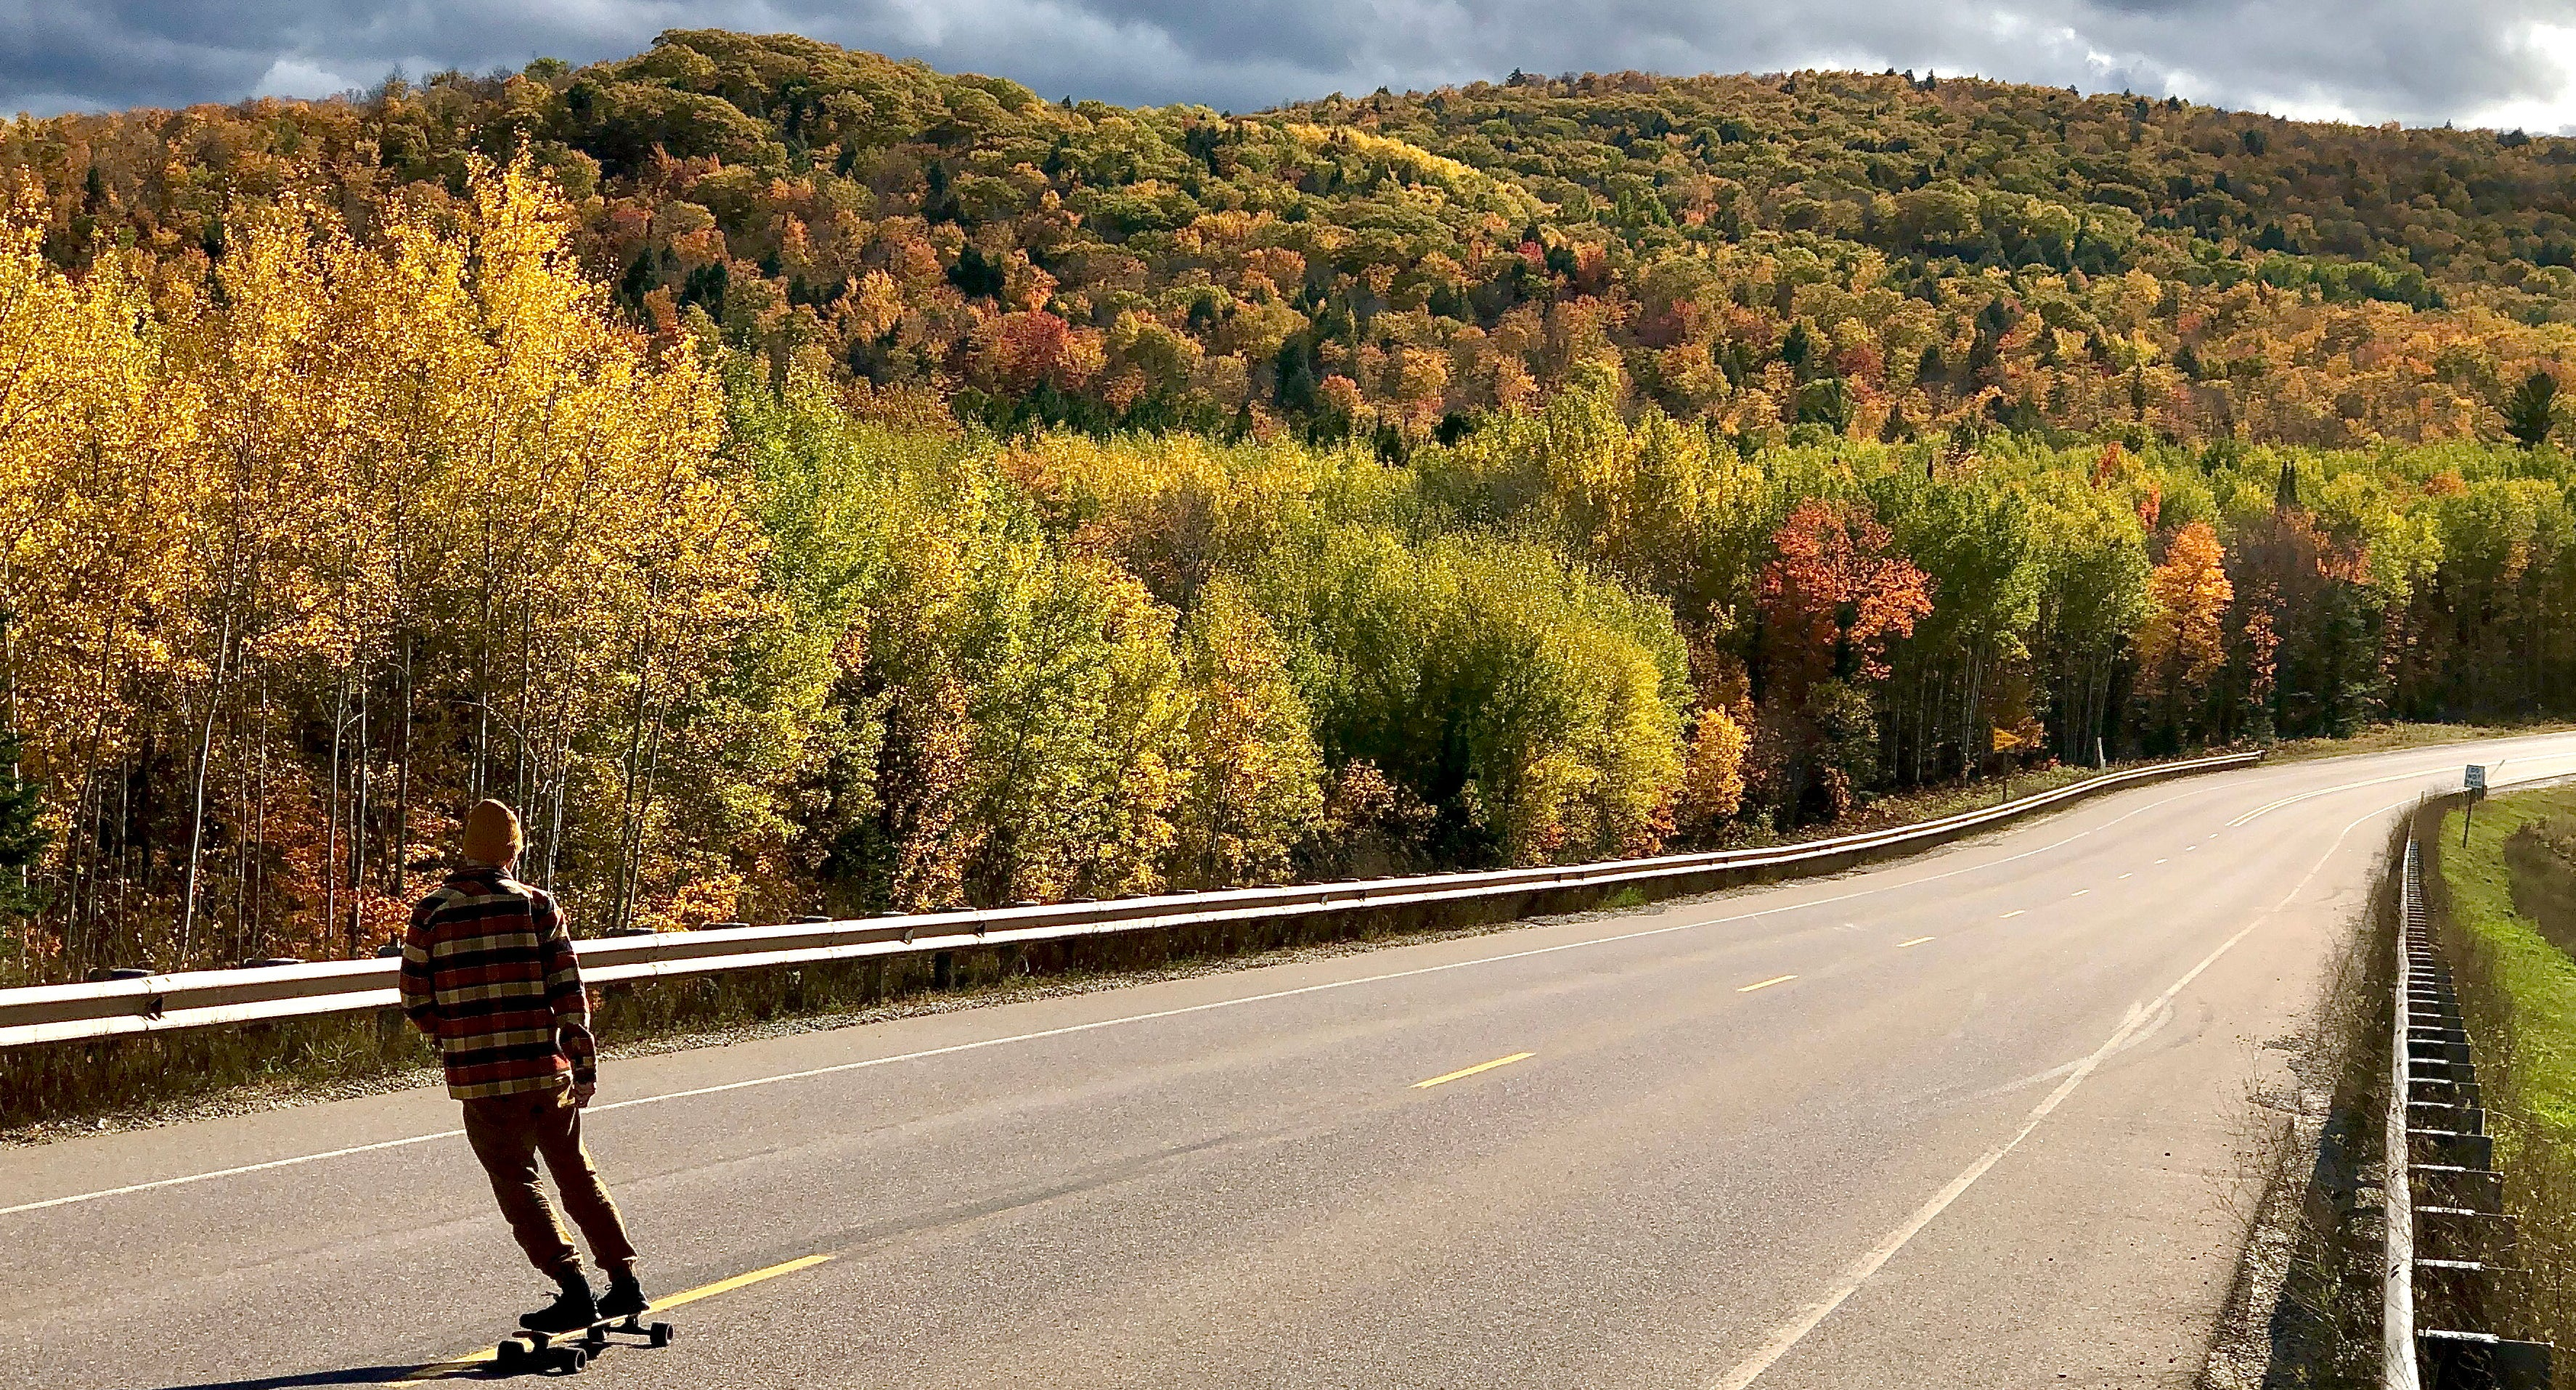 Longboarding downhill on a fall day in the Upper Peninsula